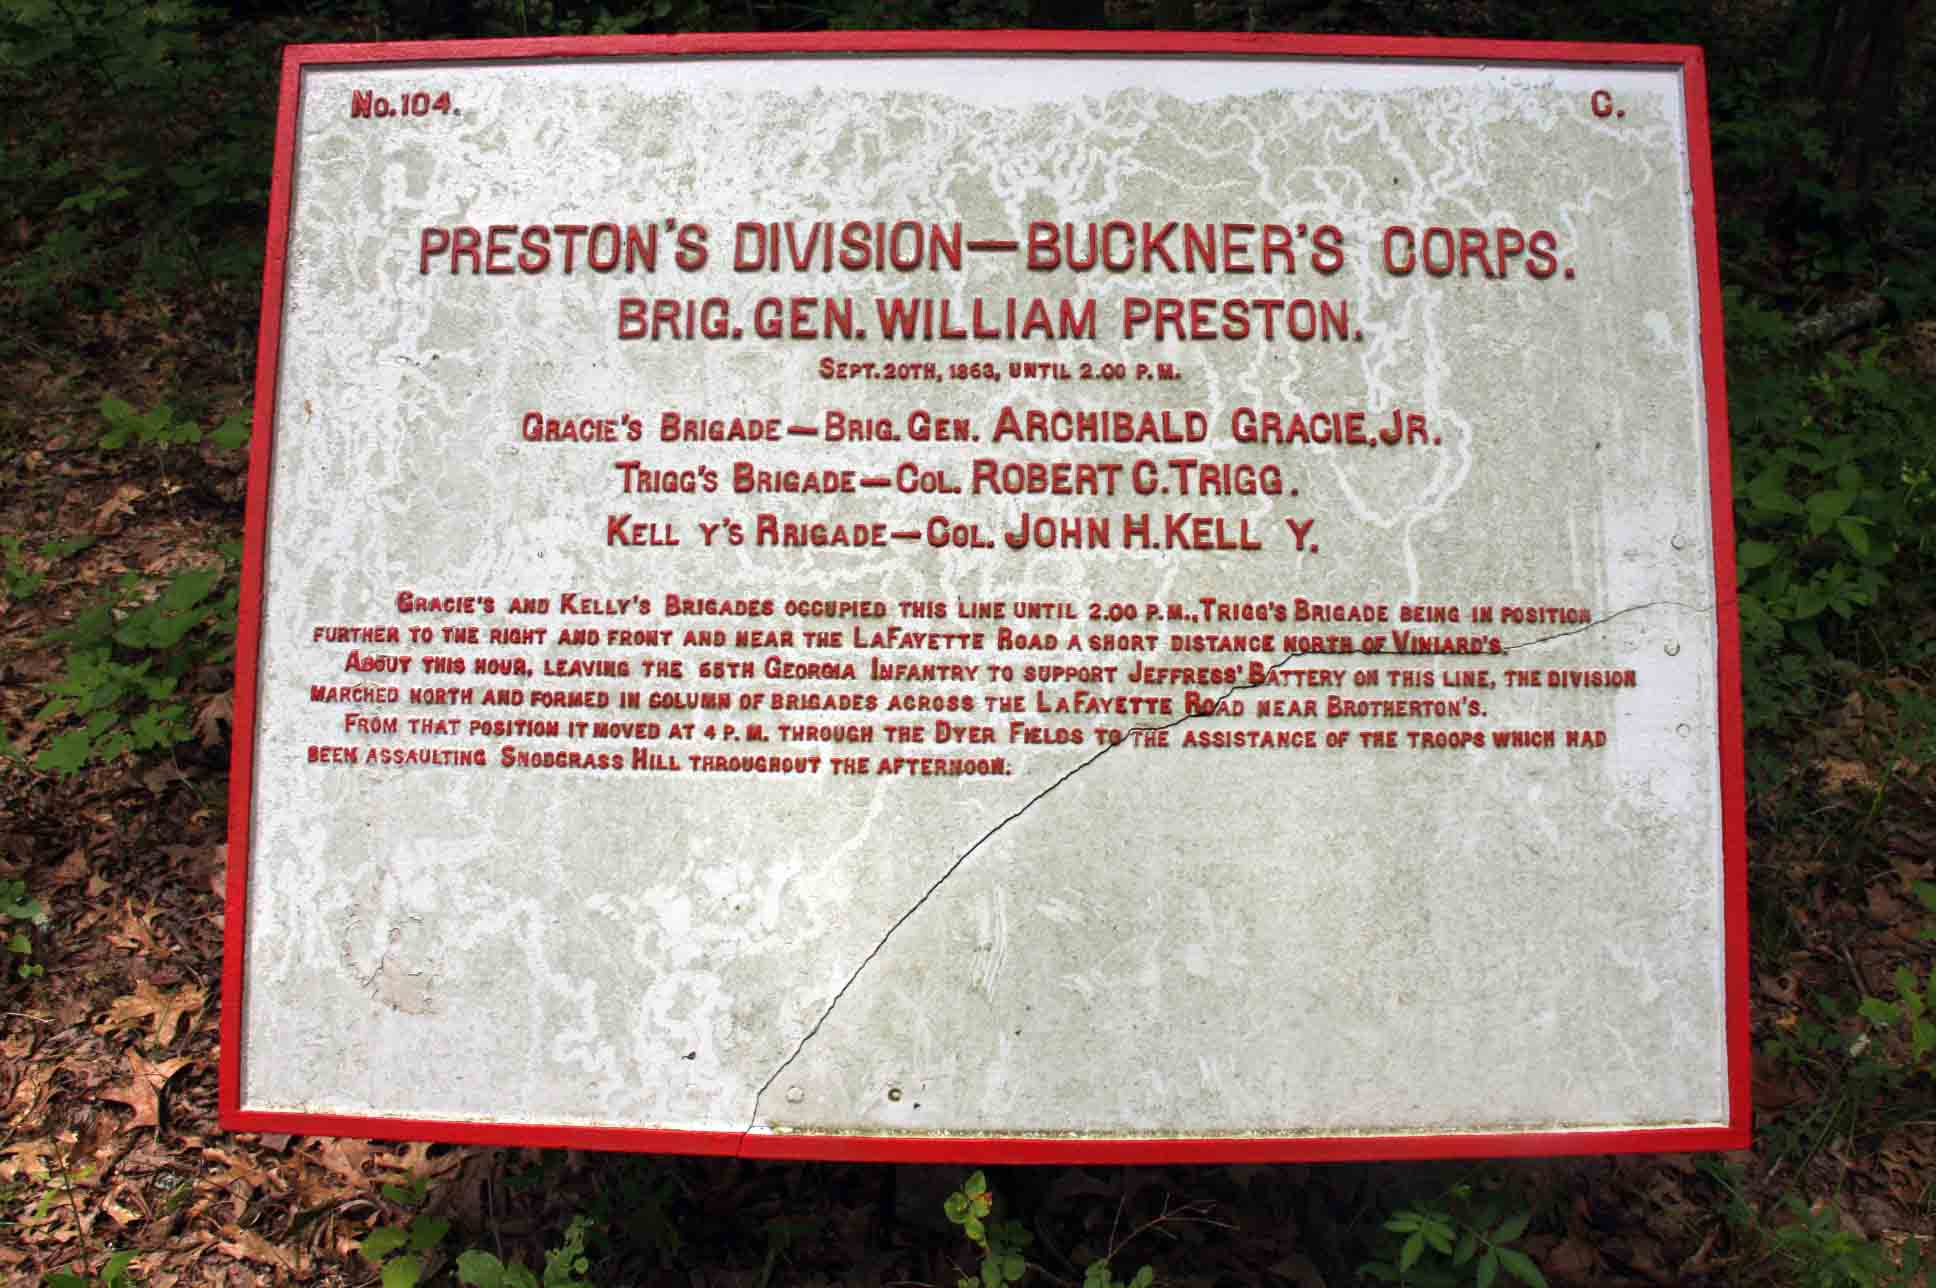 Preston's Division – Buckner's Corps Plaque, click photo to enlarge.